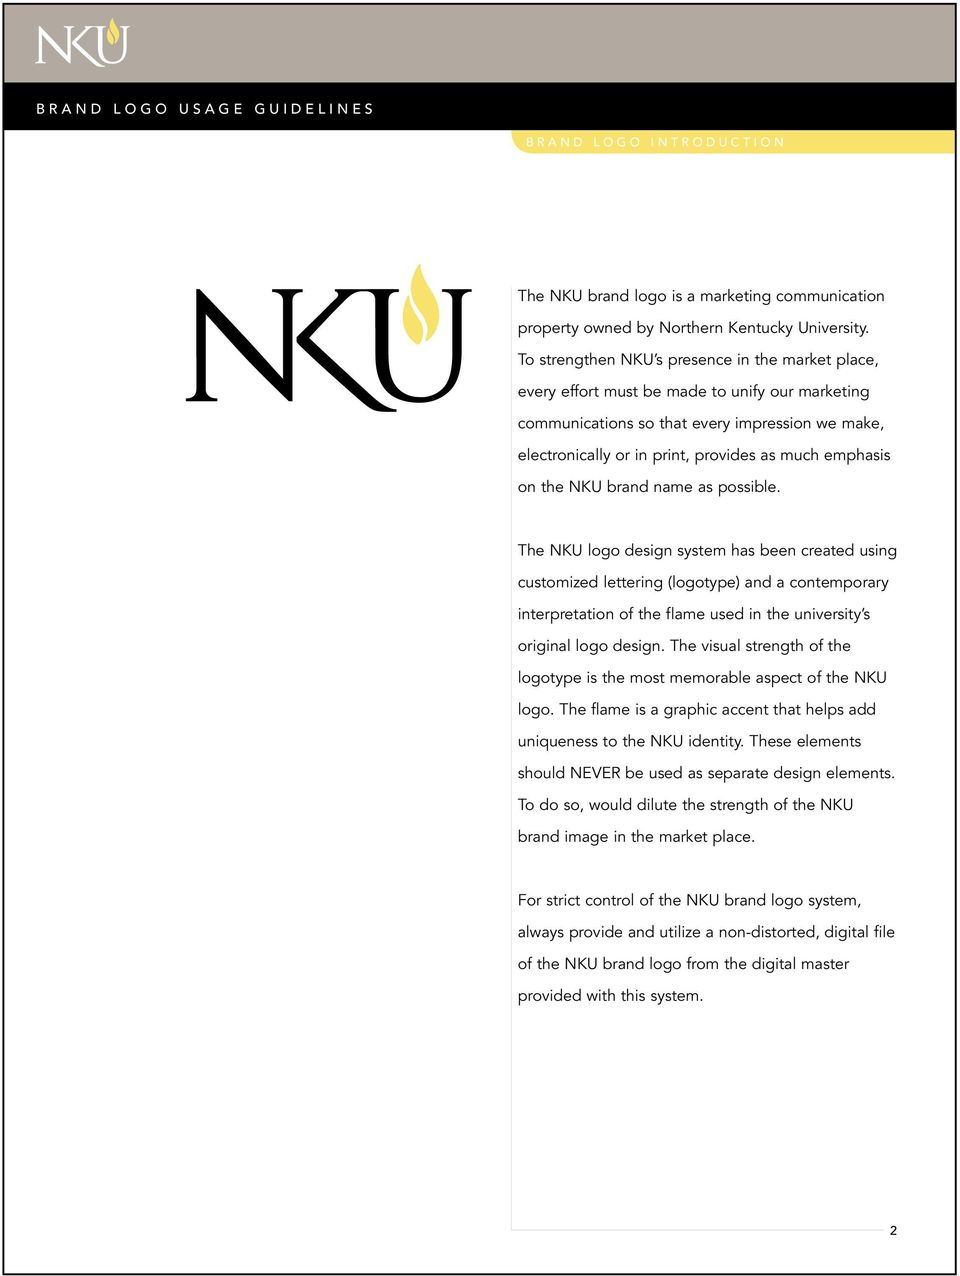 emphasis on the NKU brand name as possible.